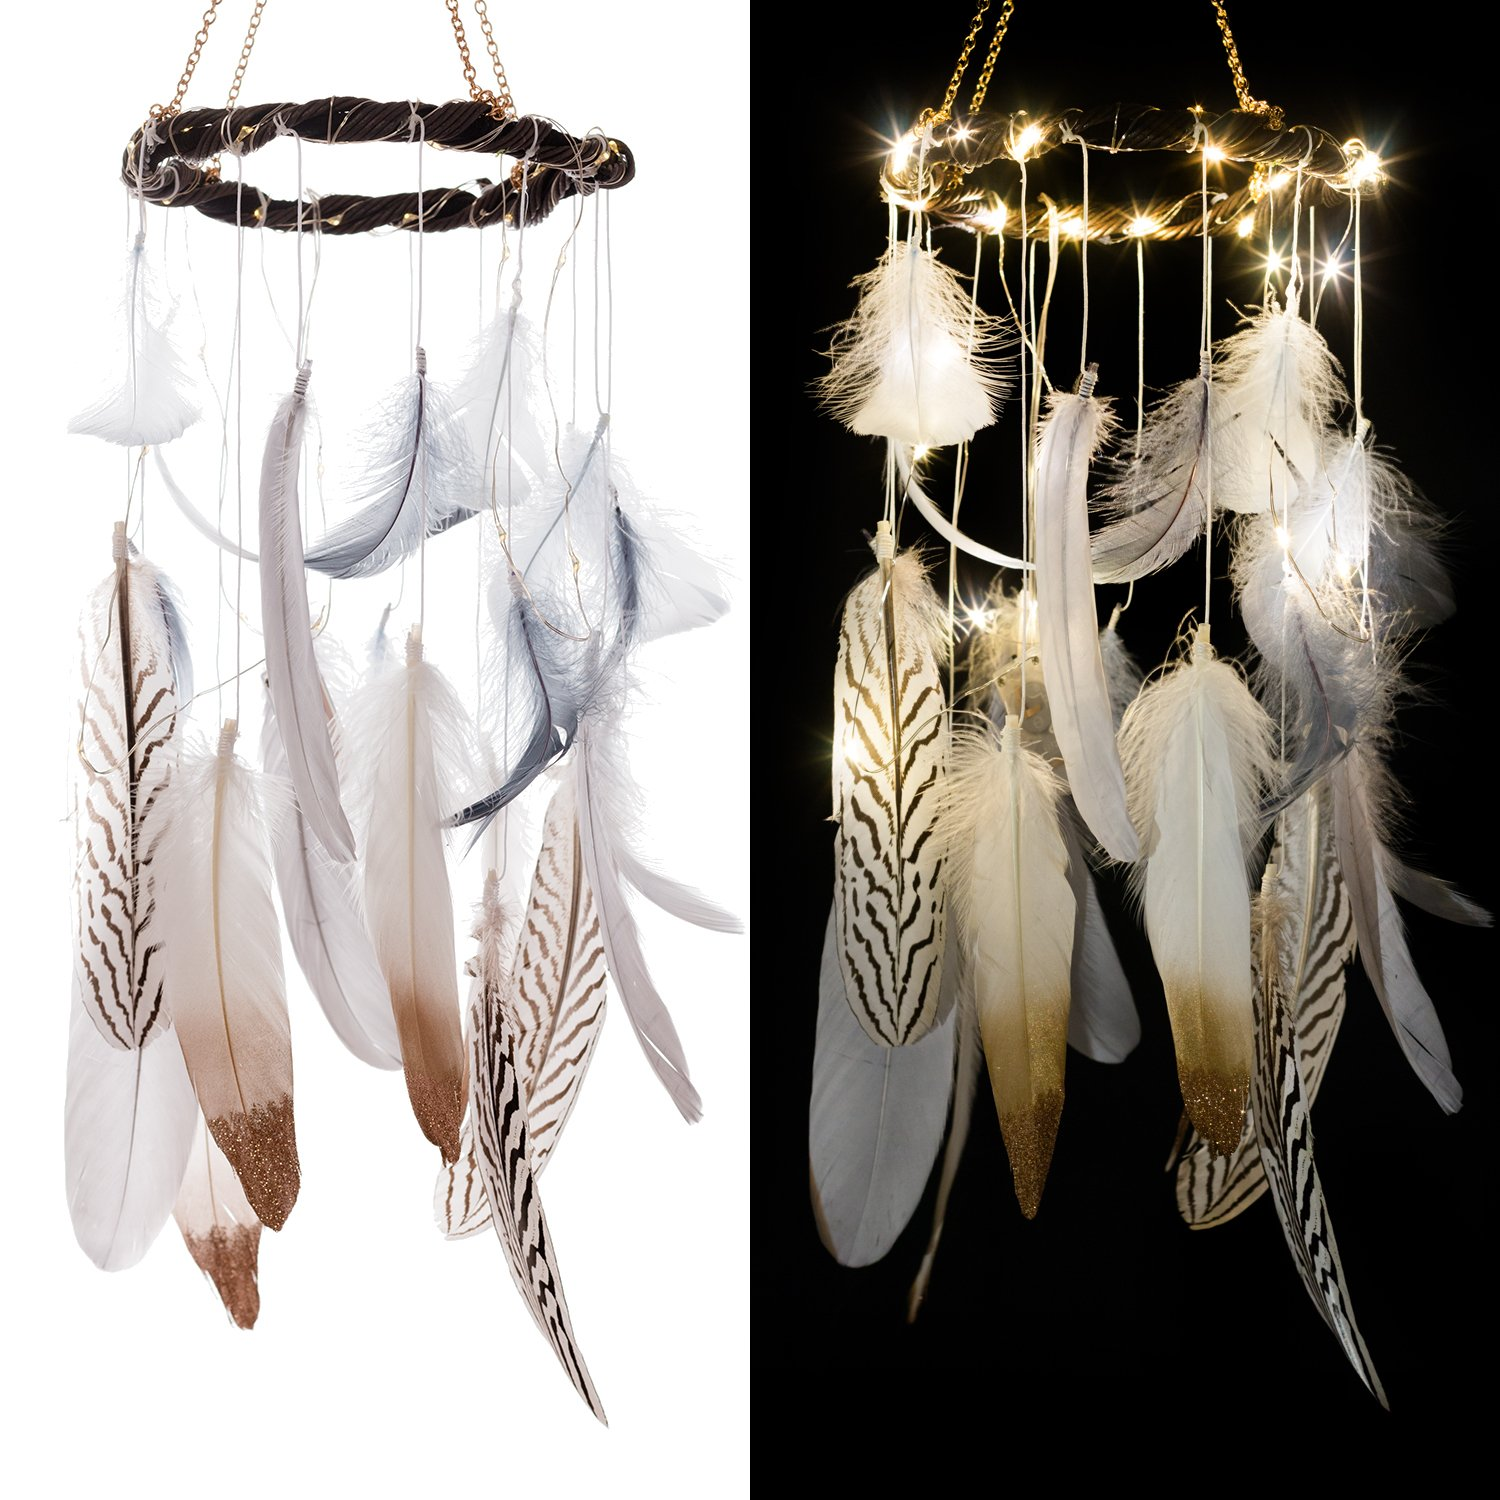 Ling's moment Feather Dream Catcher Mobile LED Fairy Lights Battery Powered Hanging Ornaments with Gold Dipped Glitter Feathers Bohemian Wedding Decorations, Boho Chic, Nursery Decor by Ling's moment